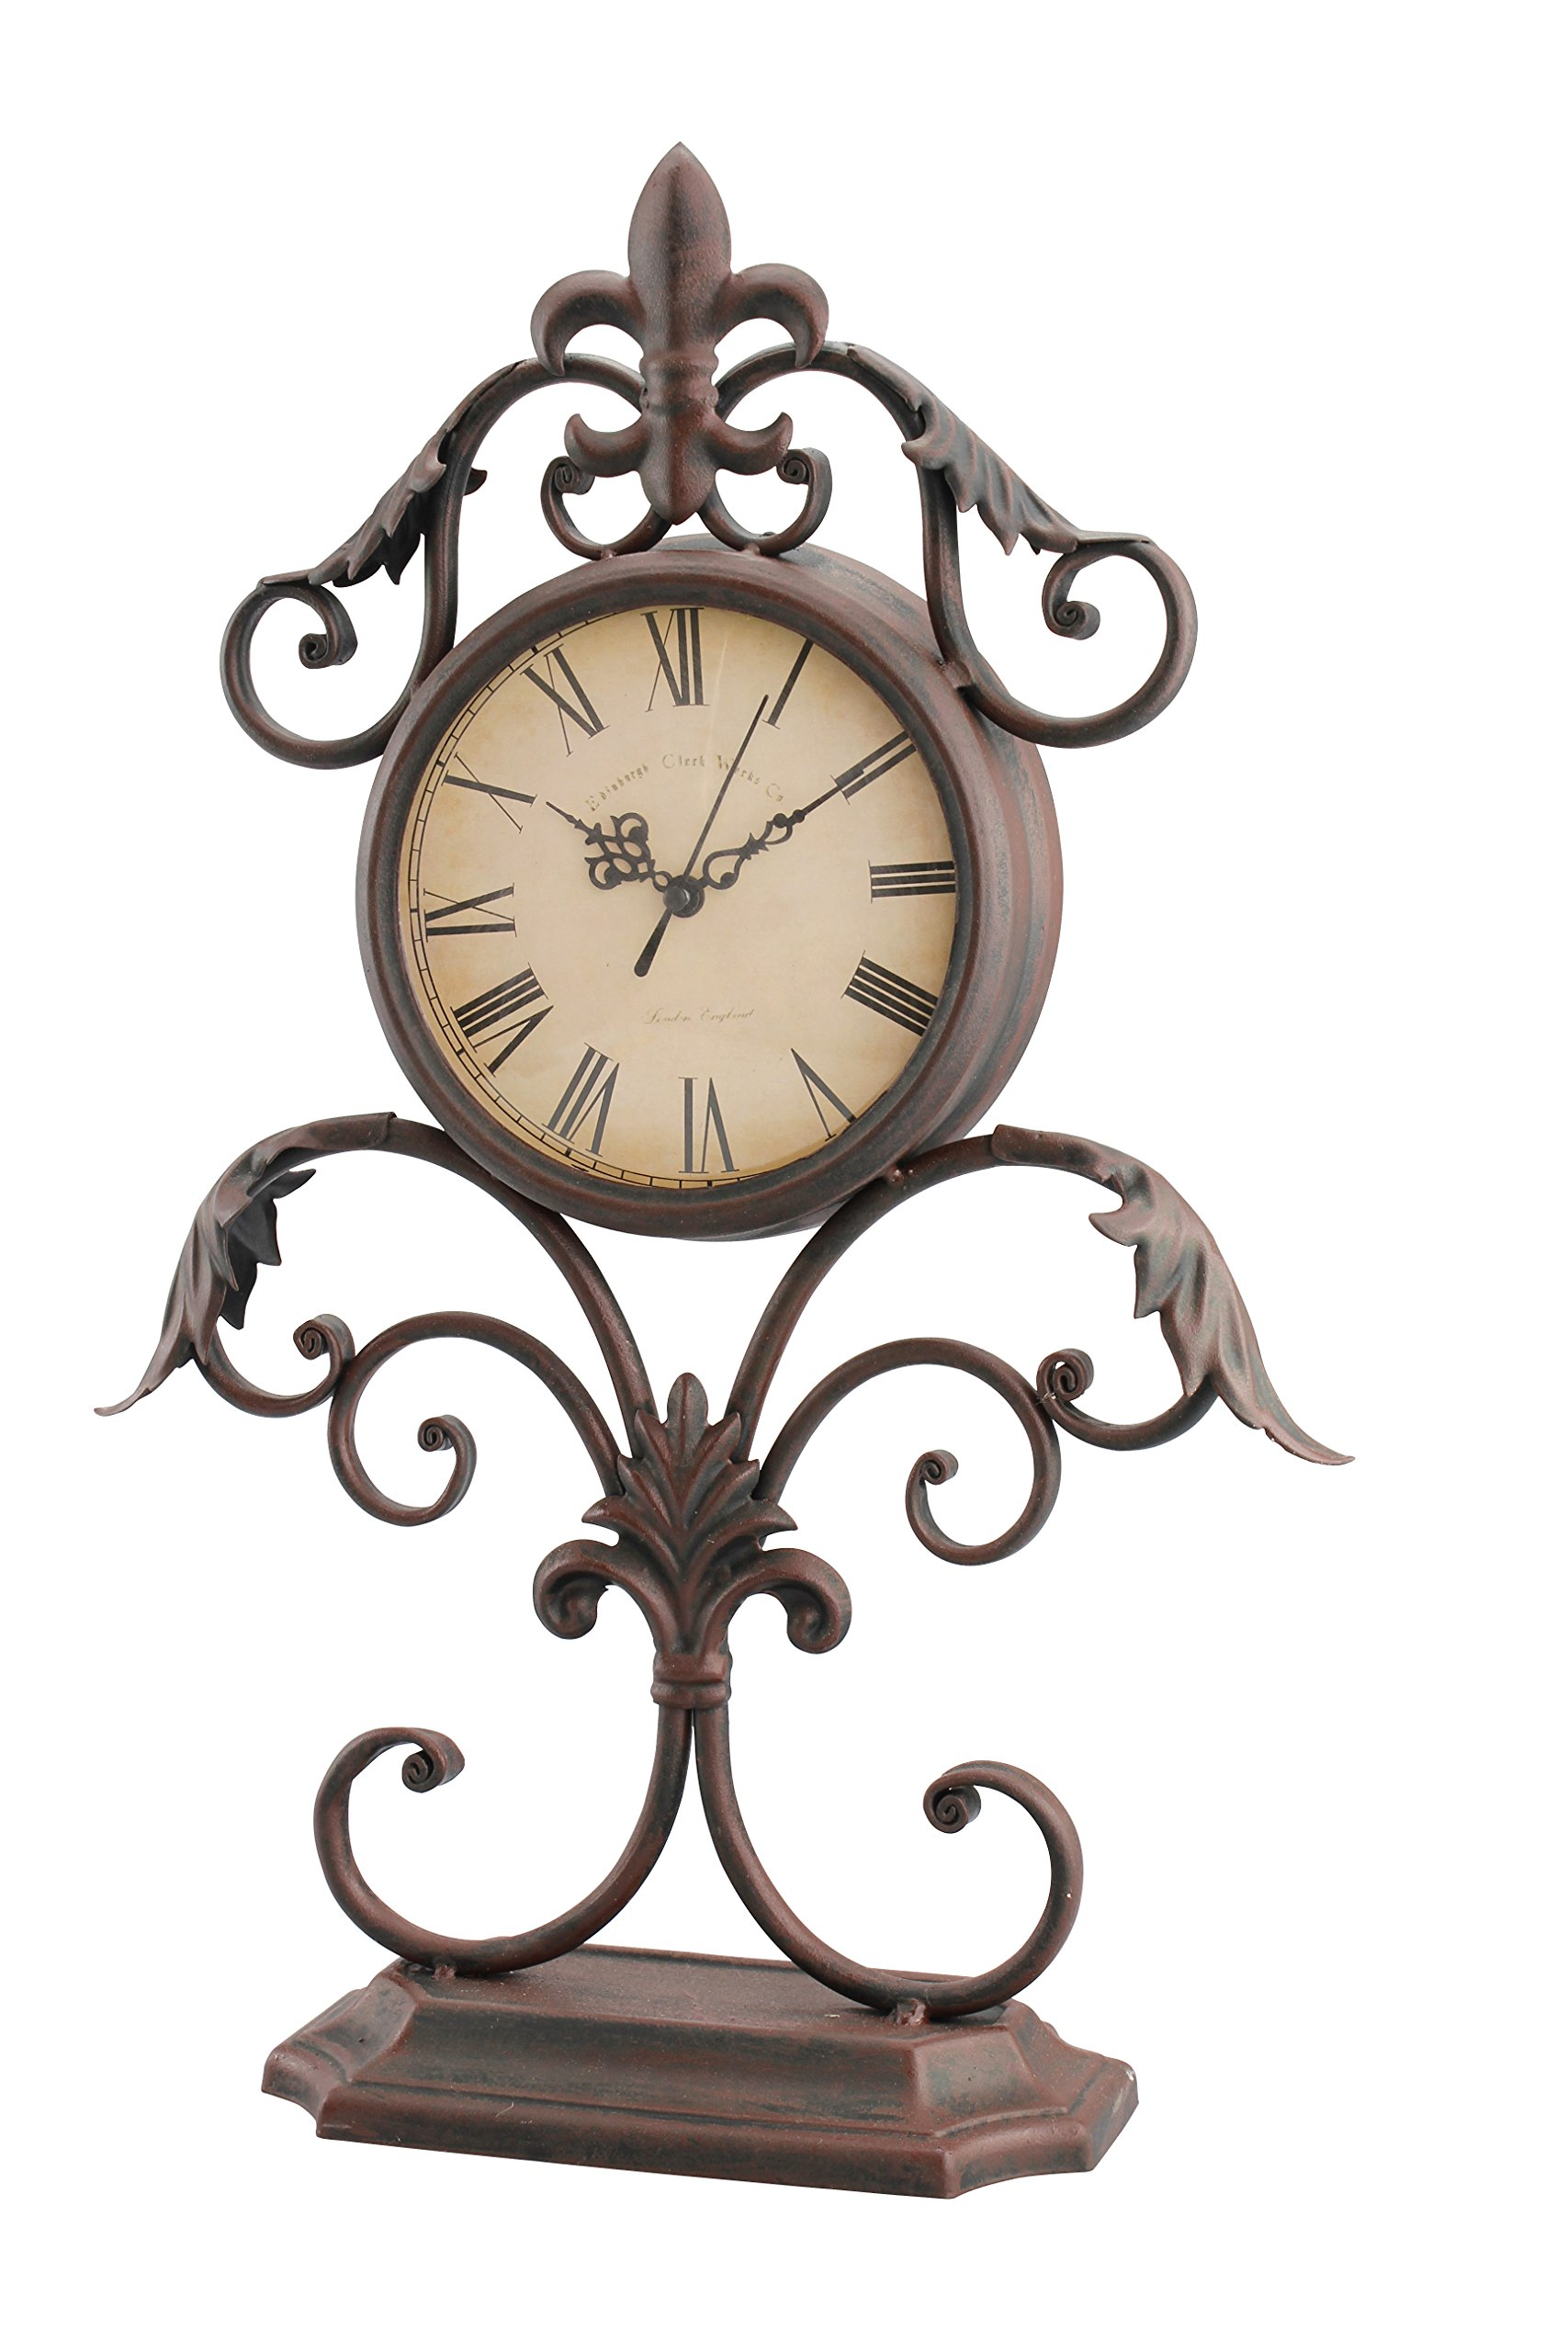 Stonebriar Fleur De Lis Table top Clock - This unique clock measures 12.1 inches in height and 9.9 inches in width and is the perfect size for the kitchen, living room, bathroom, or bedroom Antique clock features a vintage round Roman numeral clock face on a decorative scrolled metal and fleur de lis stand for an elegant Victorian feel Stonebriar's rustic table top clock is the perfect gift for Christmas, birthdays, housewarmings, weddings, or any special occasion - clocks, bedroom-decor, bedroom - 81LxkZ3SfCL -